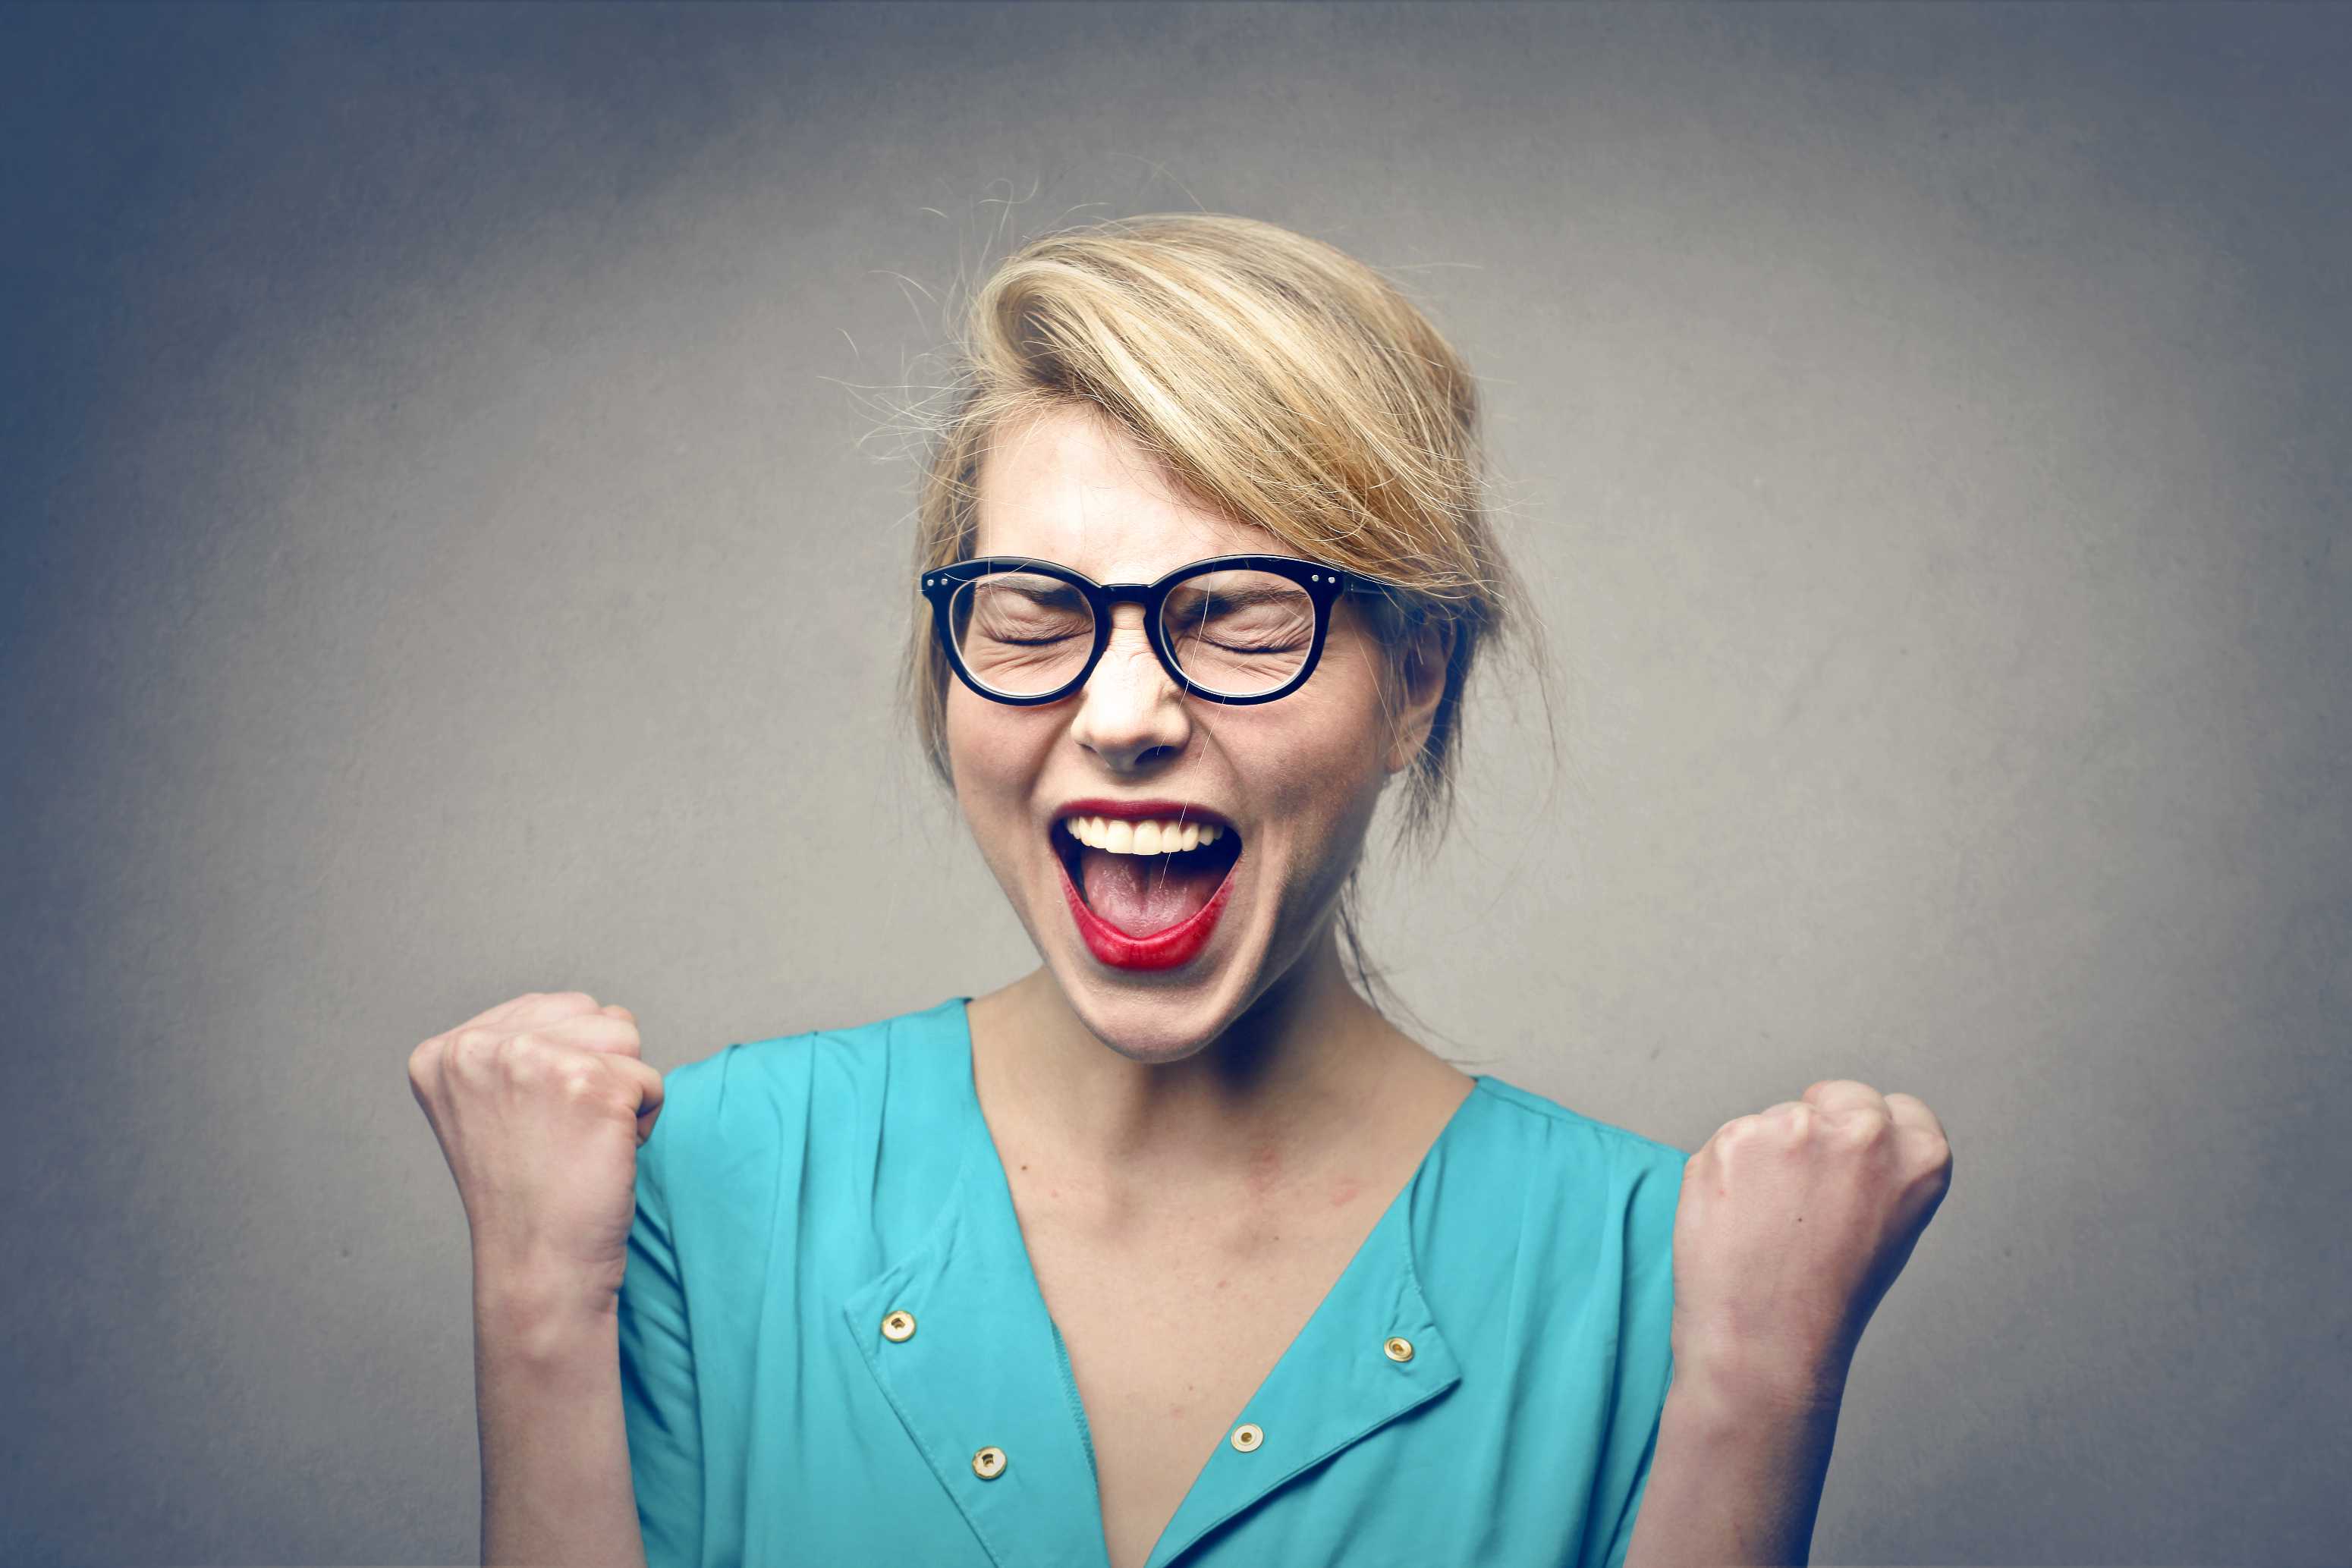 According to the study, our brains process screams of joy faster and more accurately than